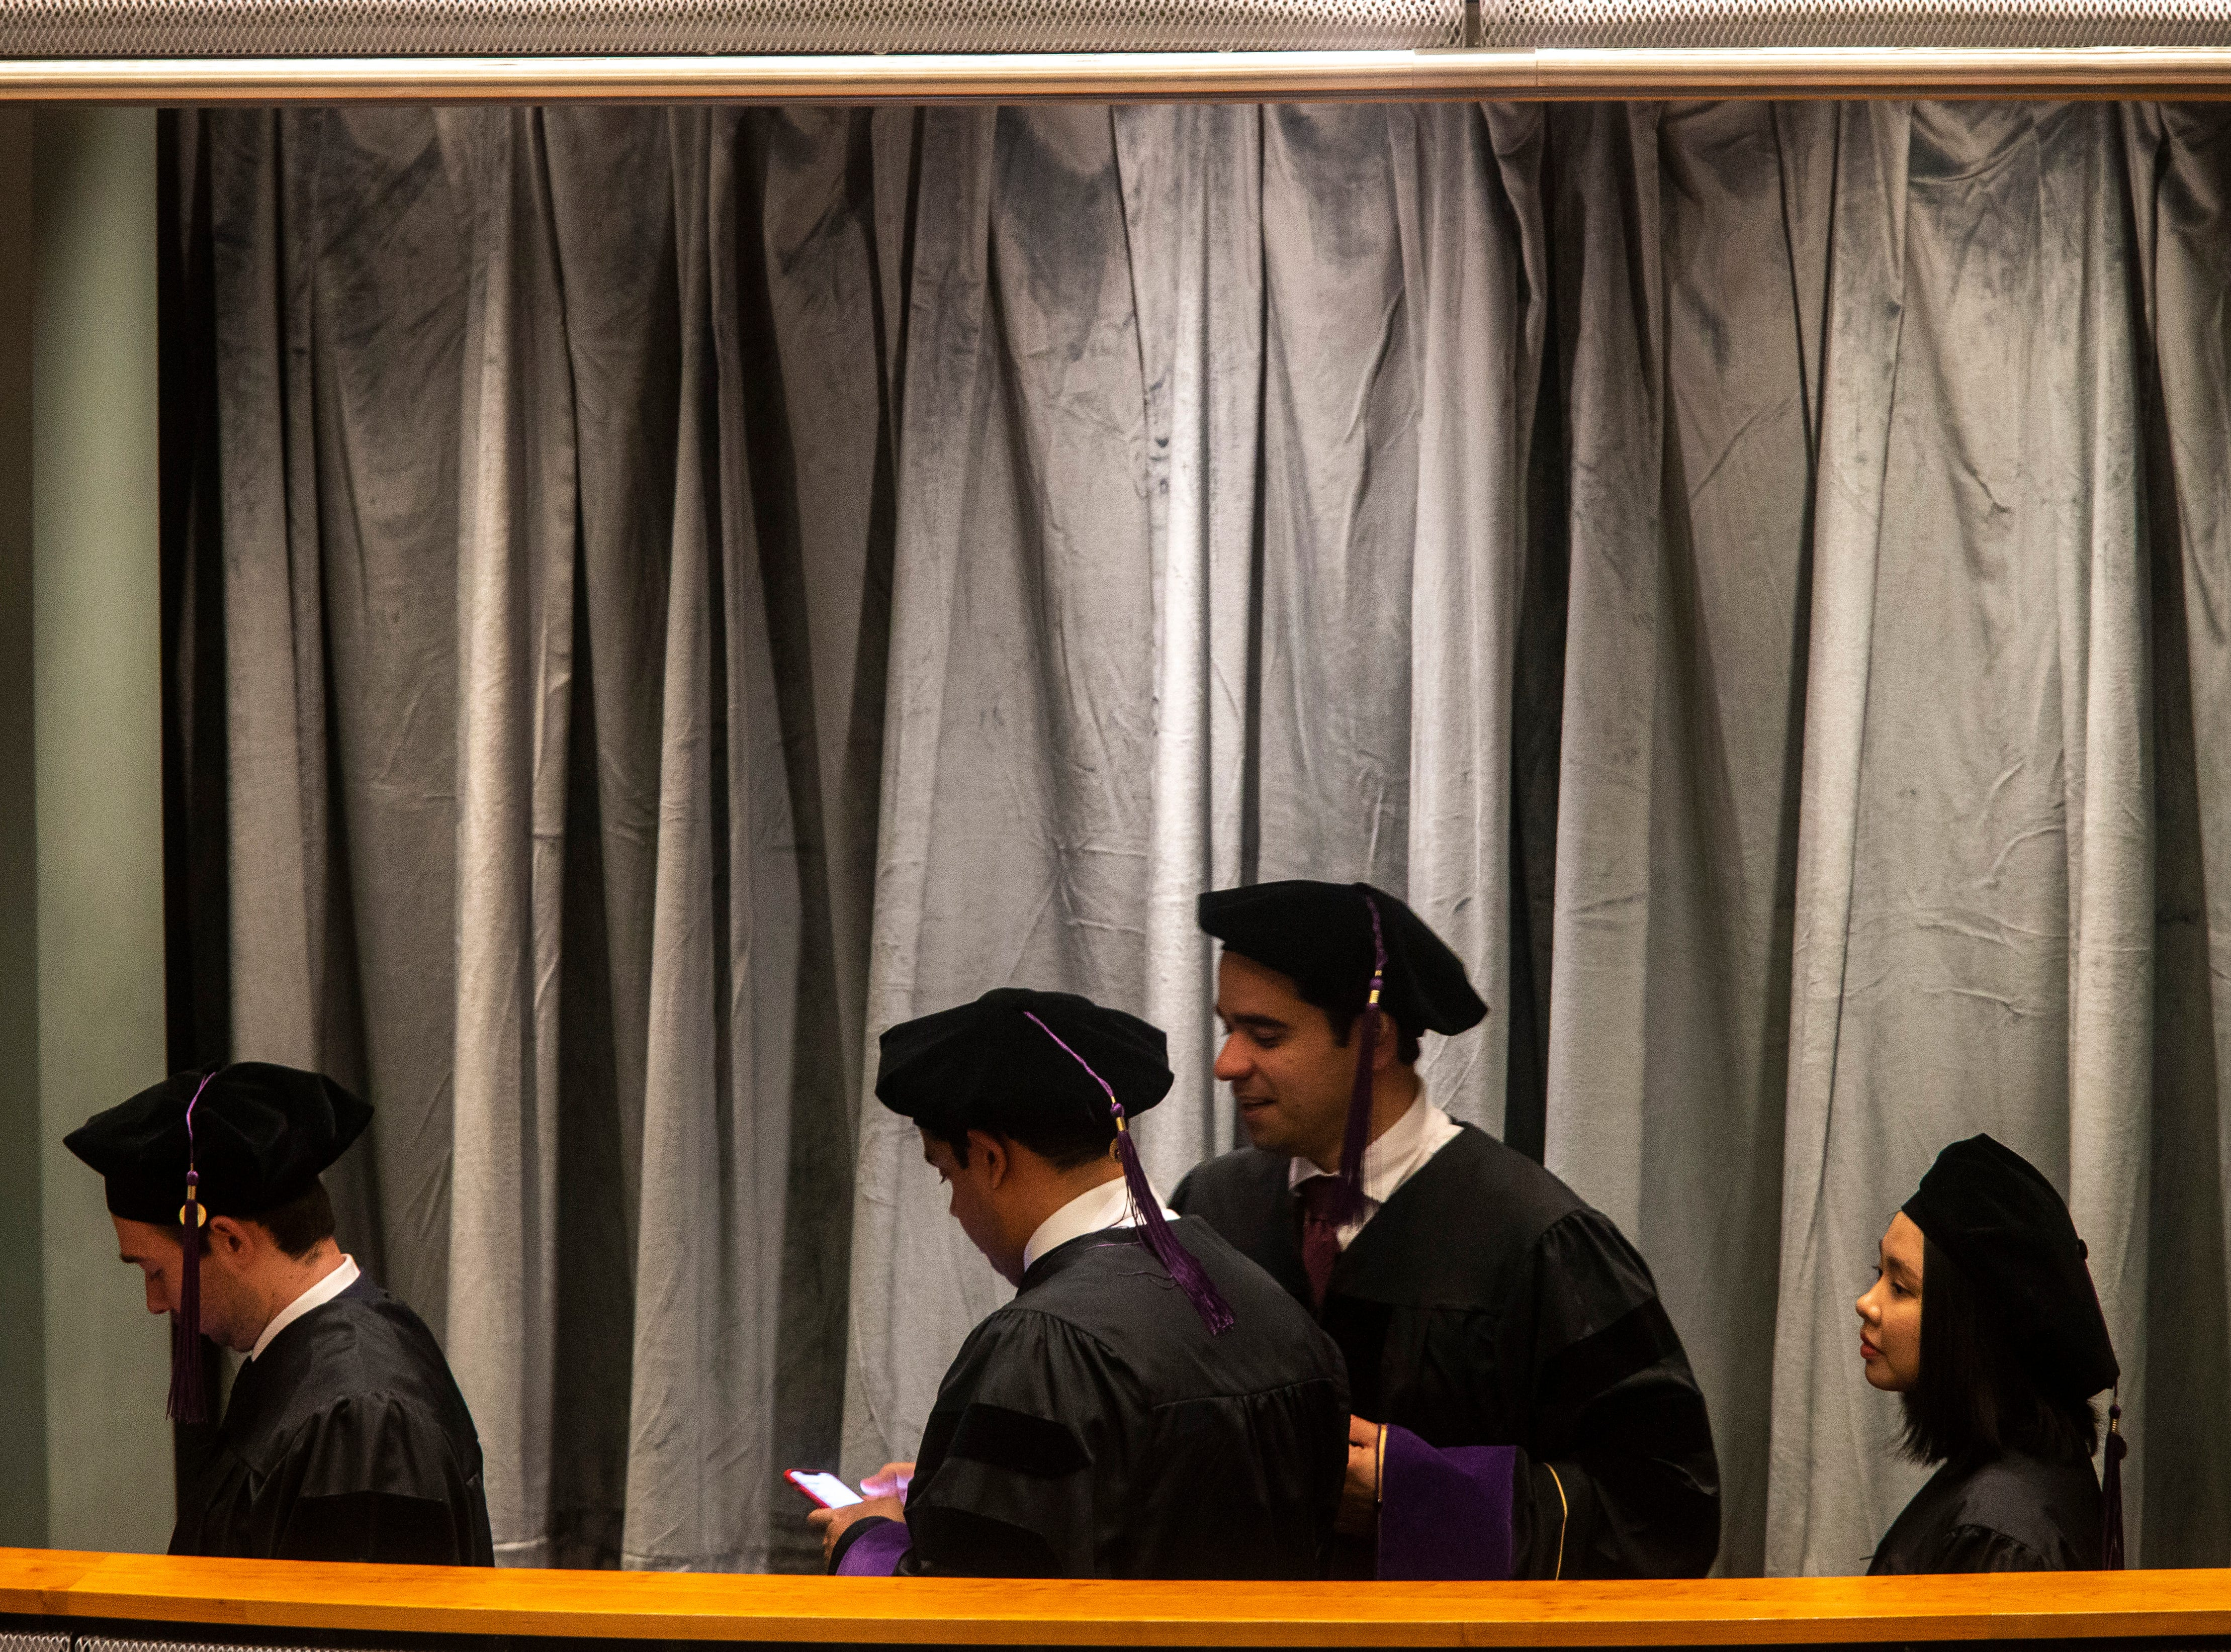 Graduates wait in line to be presented their hoods during the College of Law commencement ceremony, Friday, May 10, 2019, at Hancher Auditorium on the University of Iowa campus in Iowa City, Iowa.